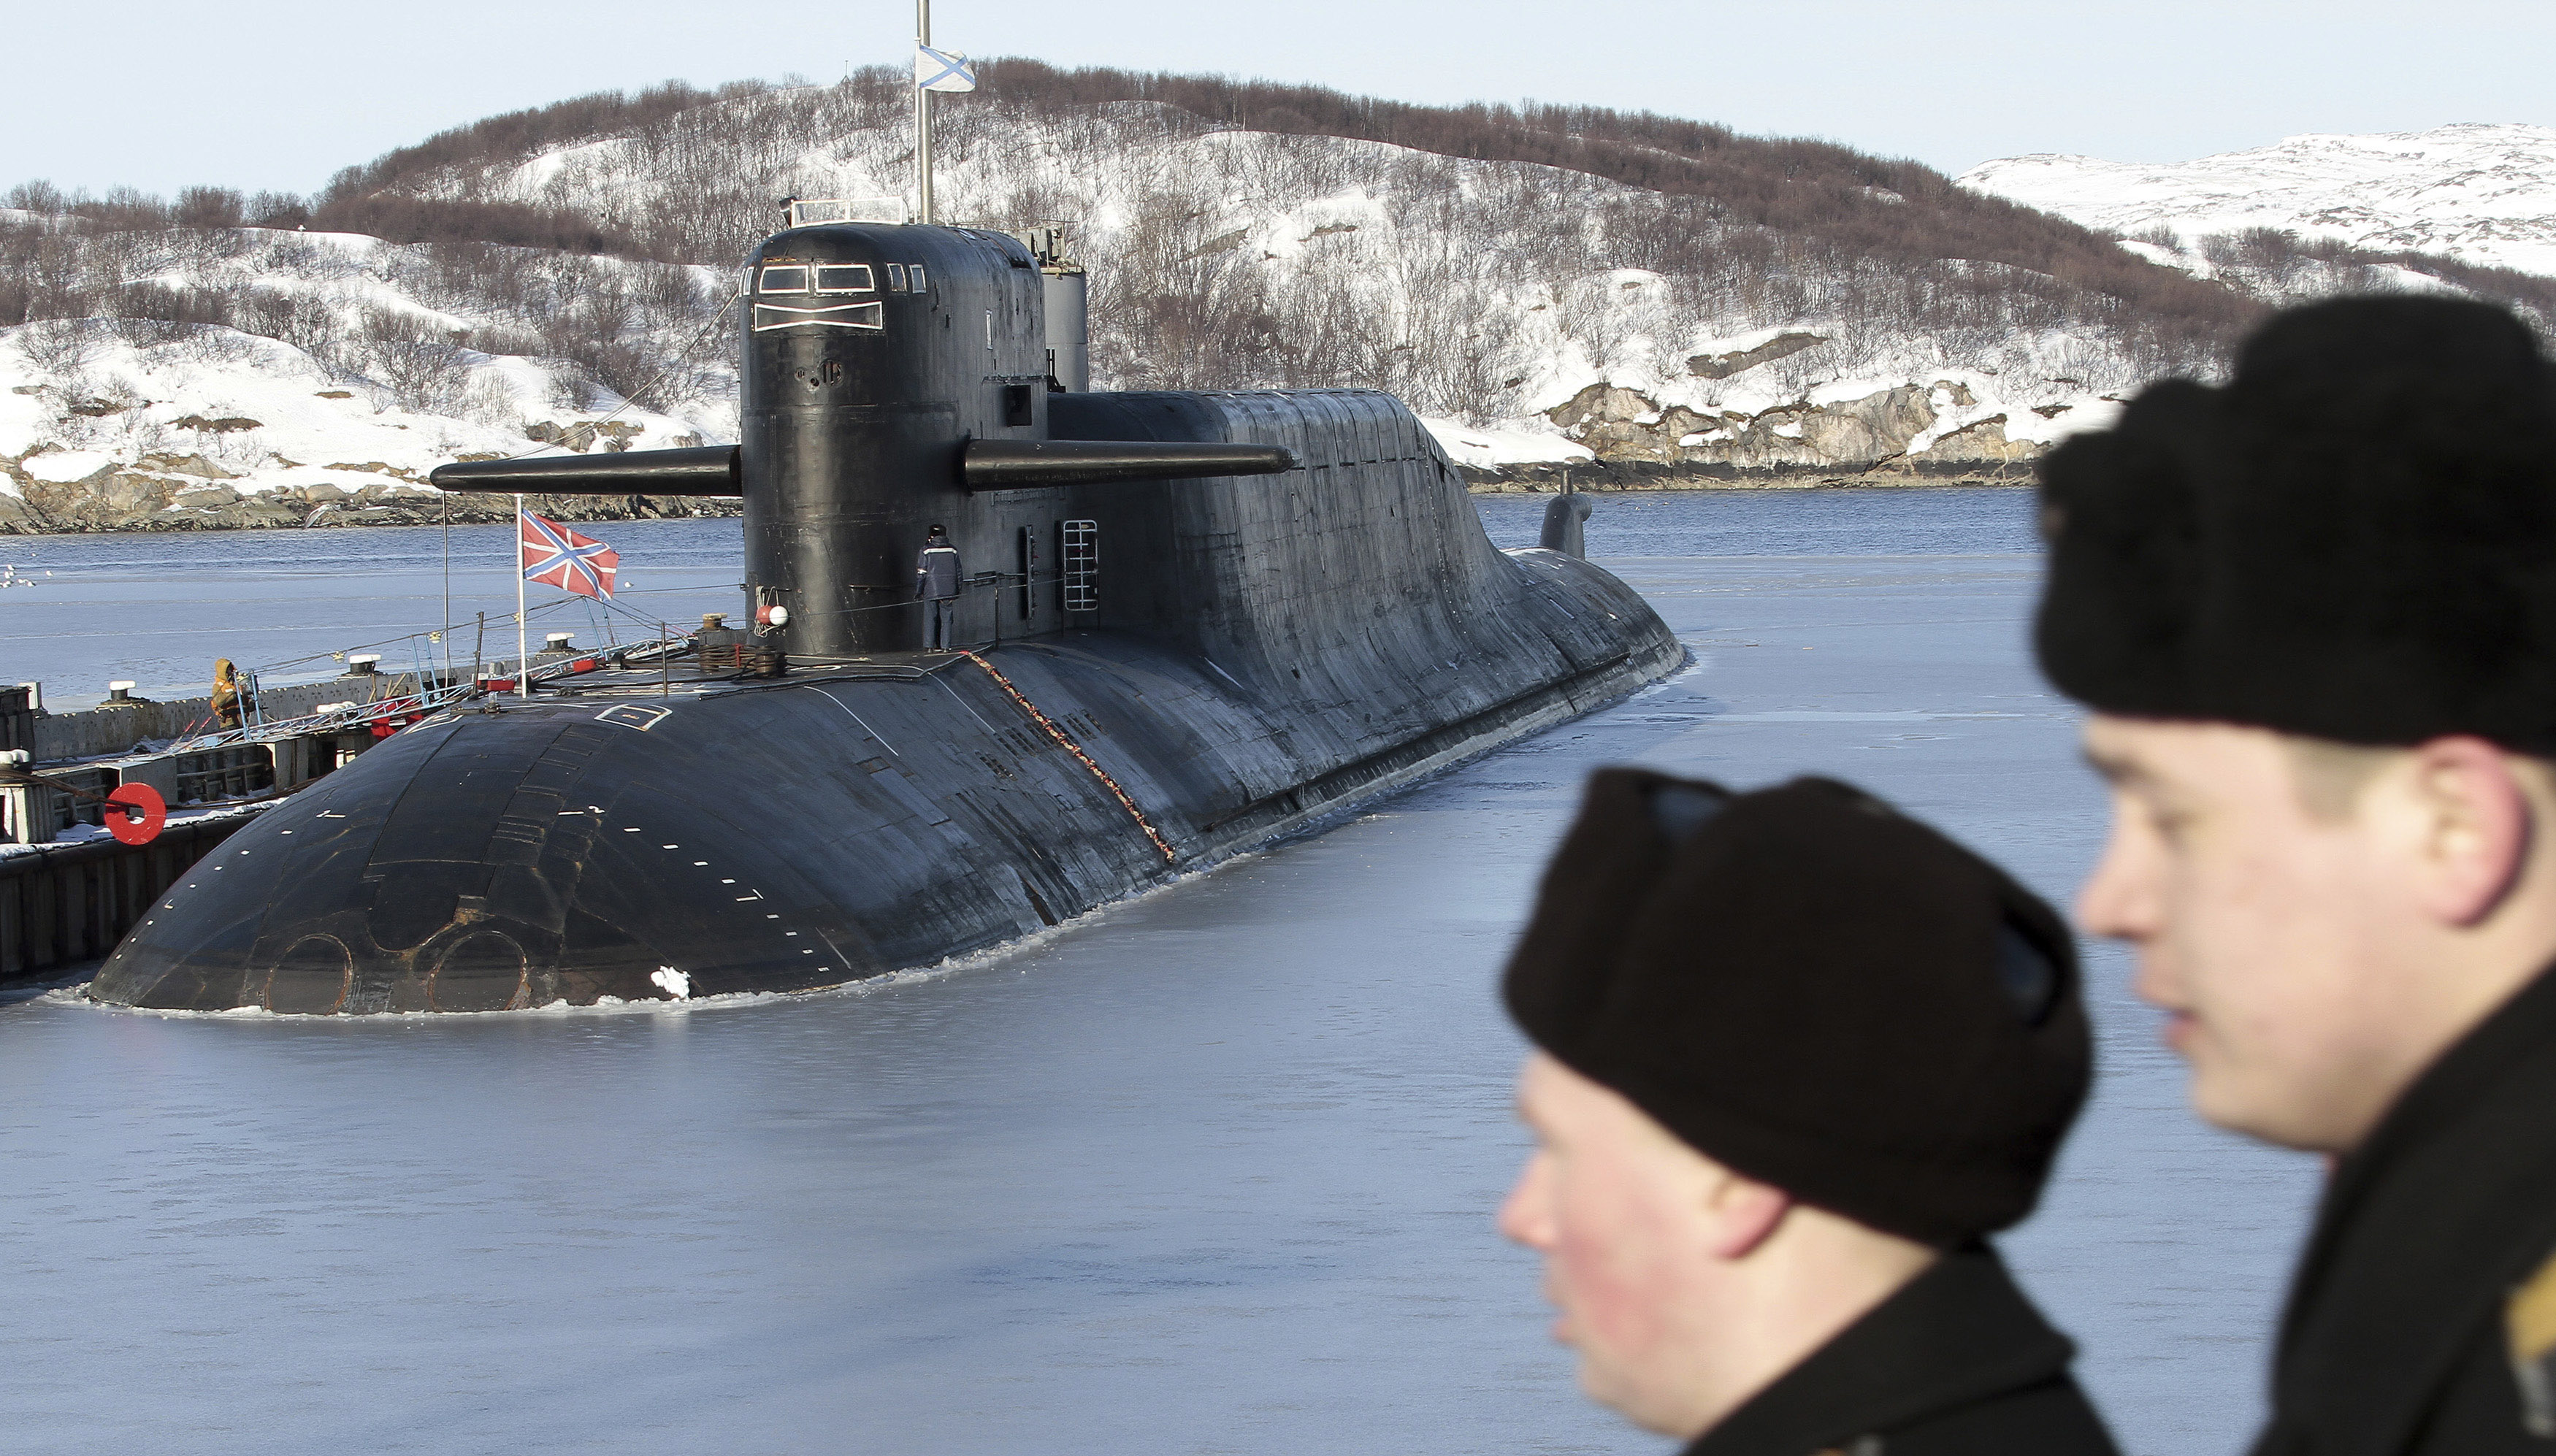 Legal fight over top secret Russian spy sub comes to surface